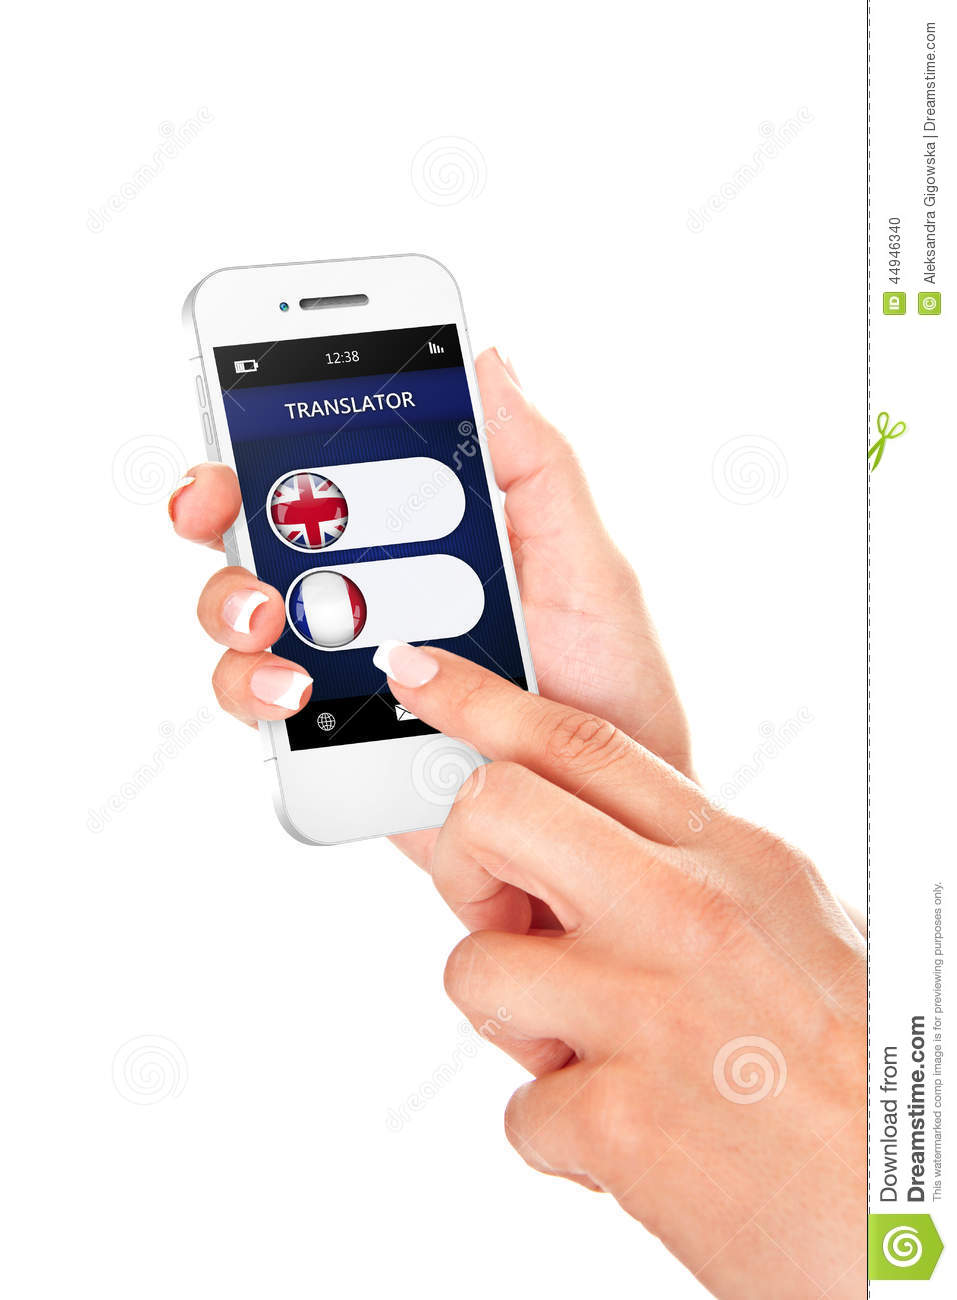 free dictionary download for mobile phones